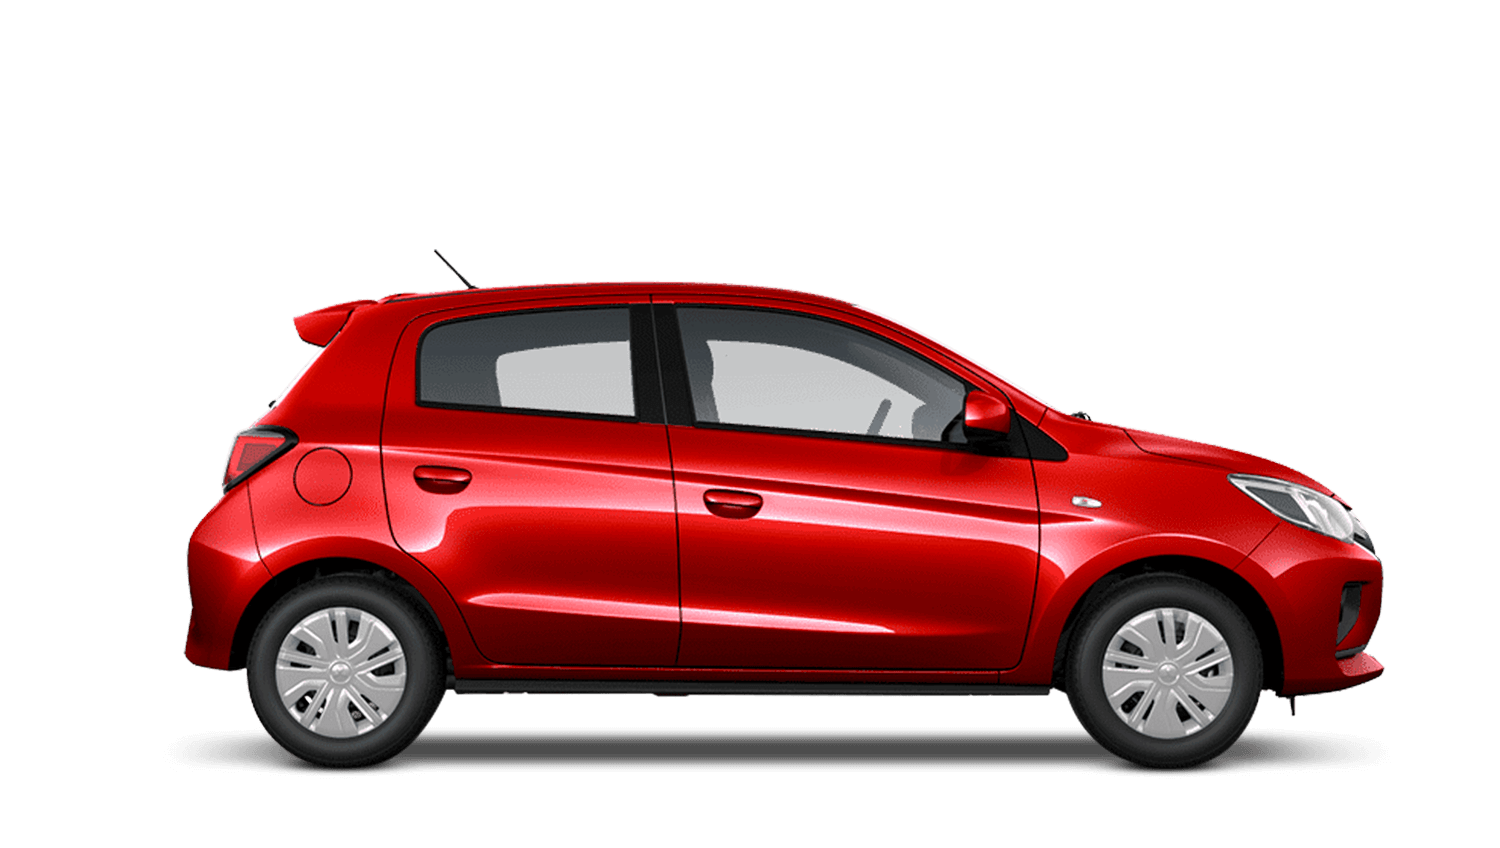 Red Metallic New Mitsubishi Mirage